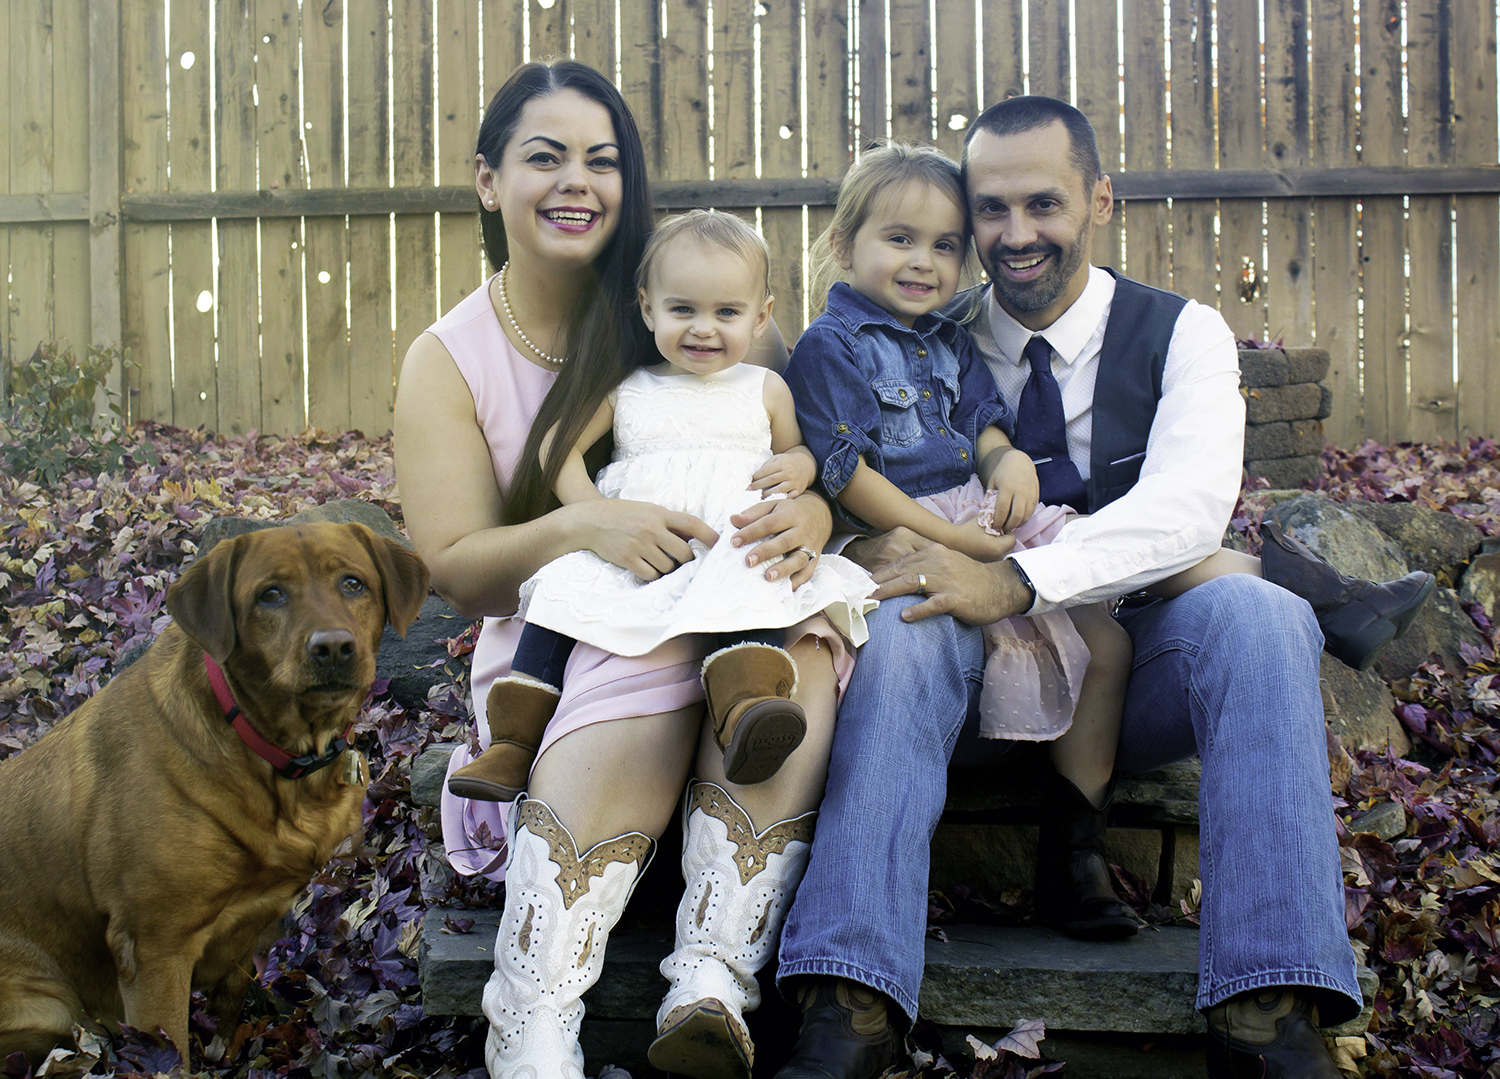 A mother, father, two daughters and a dog pose for the camera